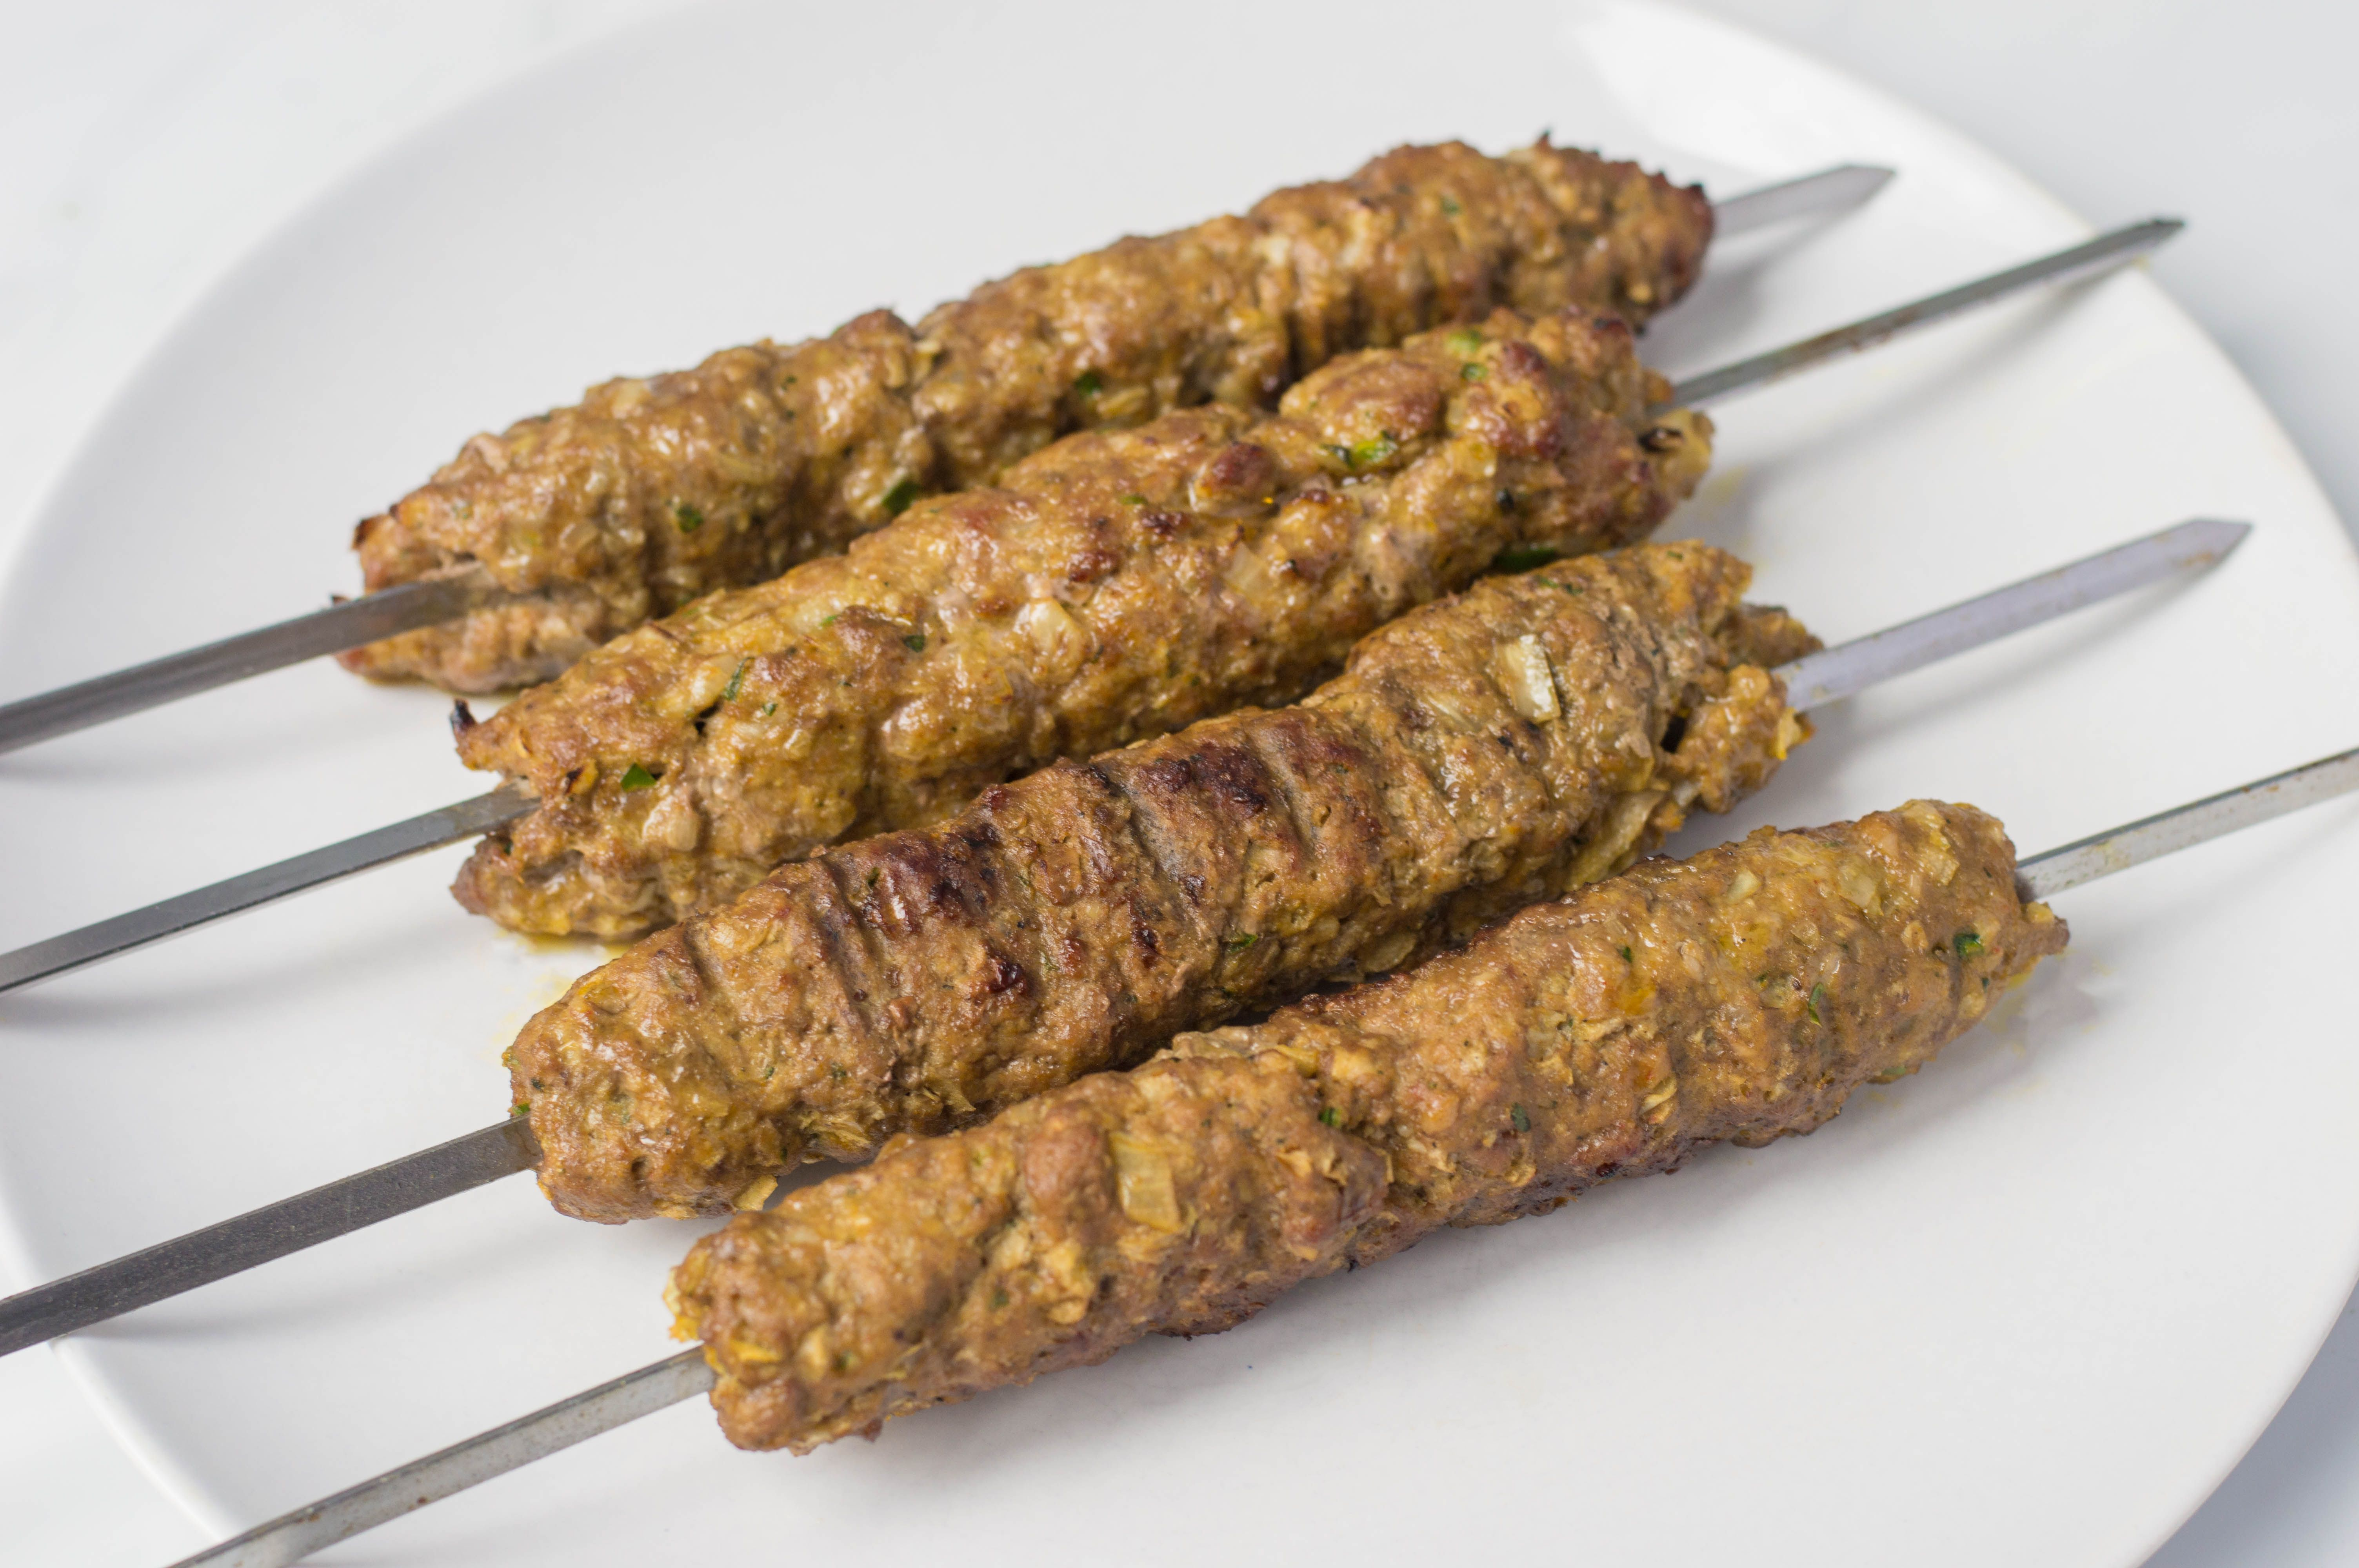 Remove kofta from the skewers